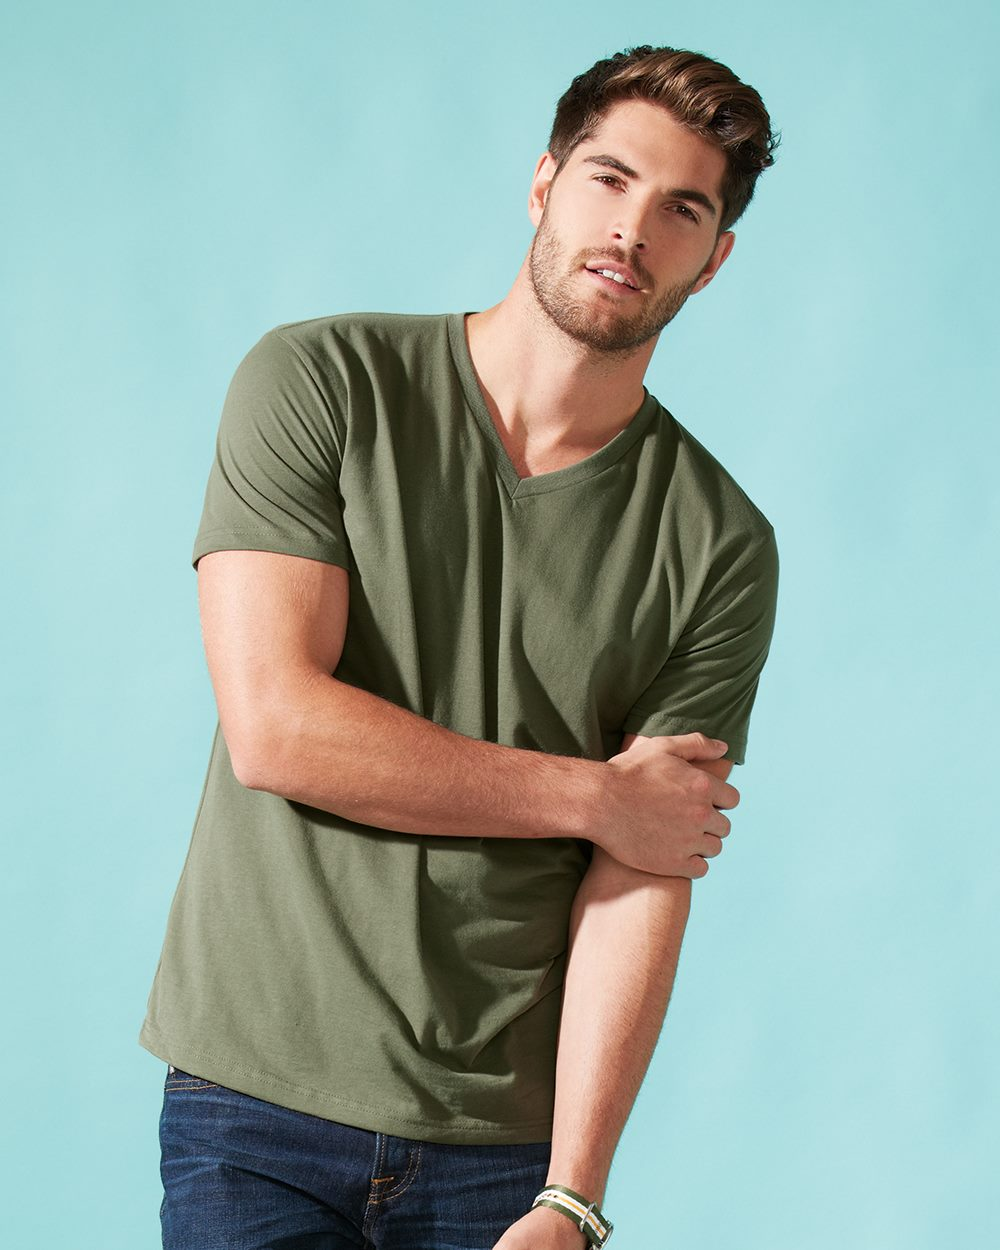 61f81a5522c4 6440 Next Level Men's Premium Fitted Sueded V-Neck Tee > T-Shirts